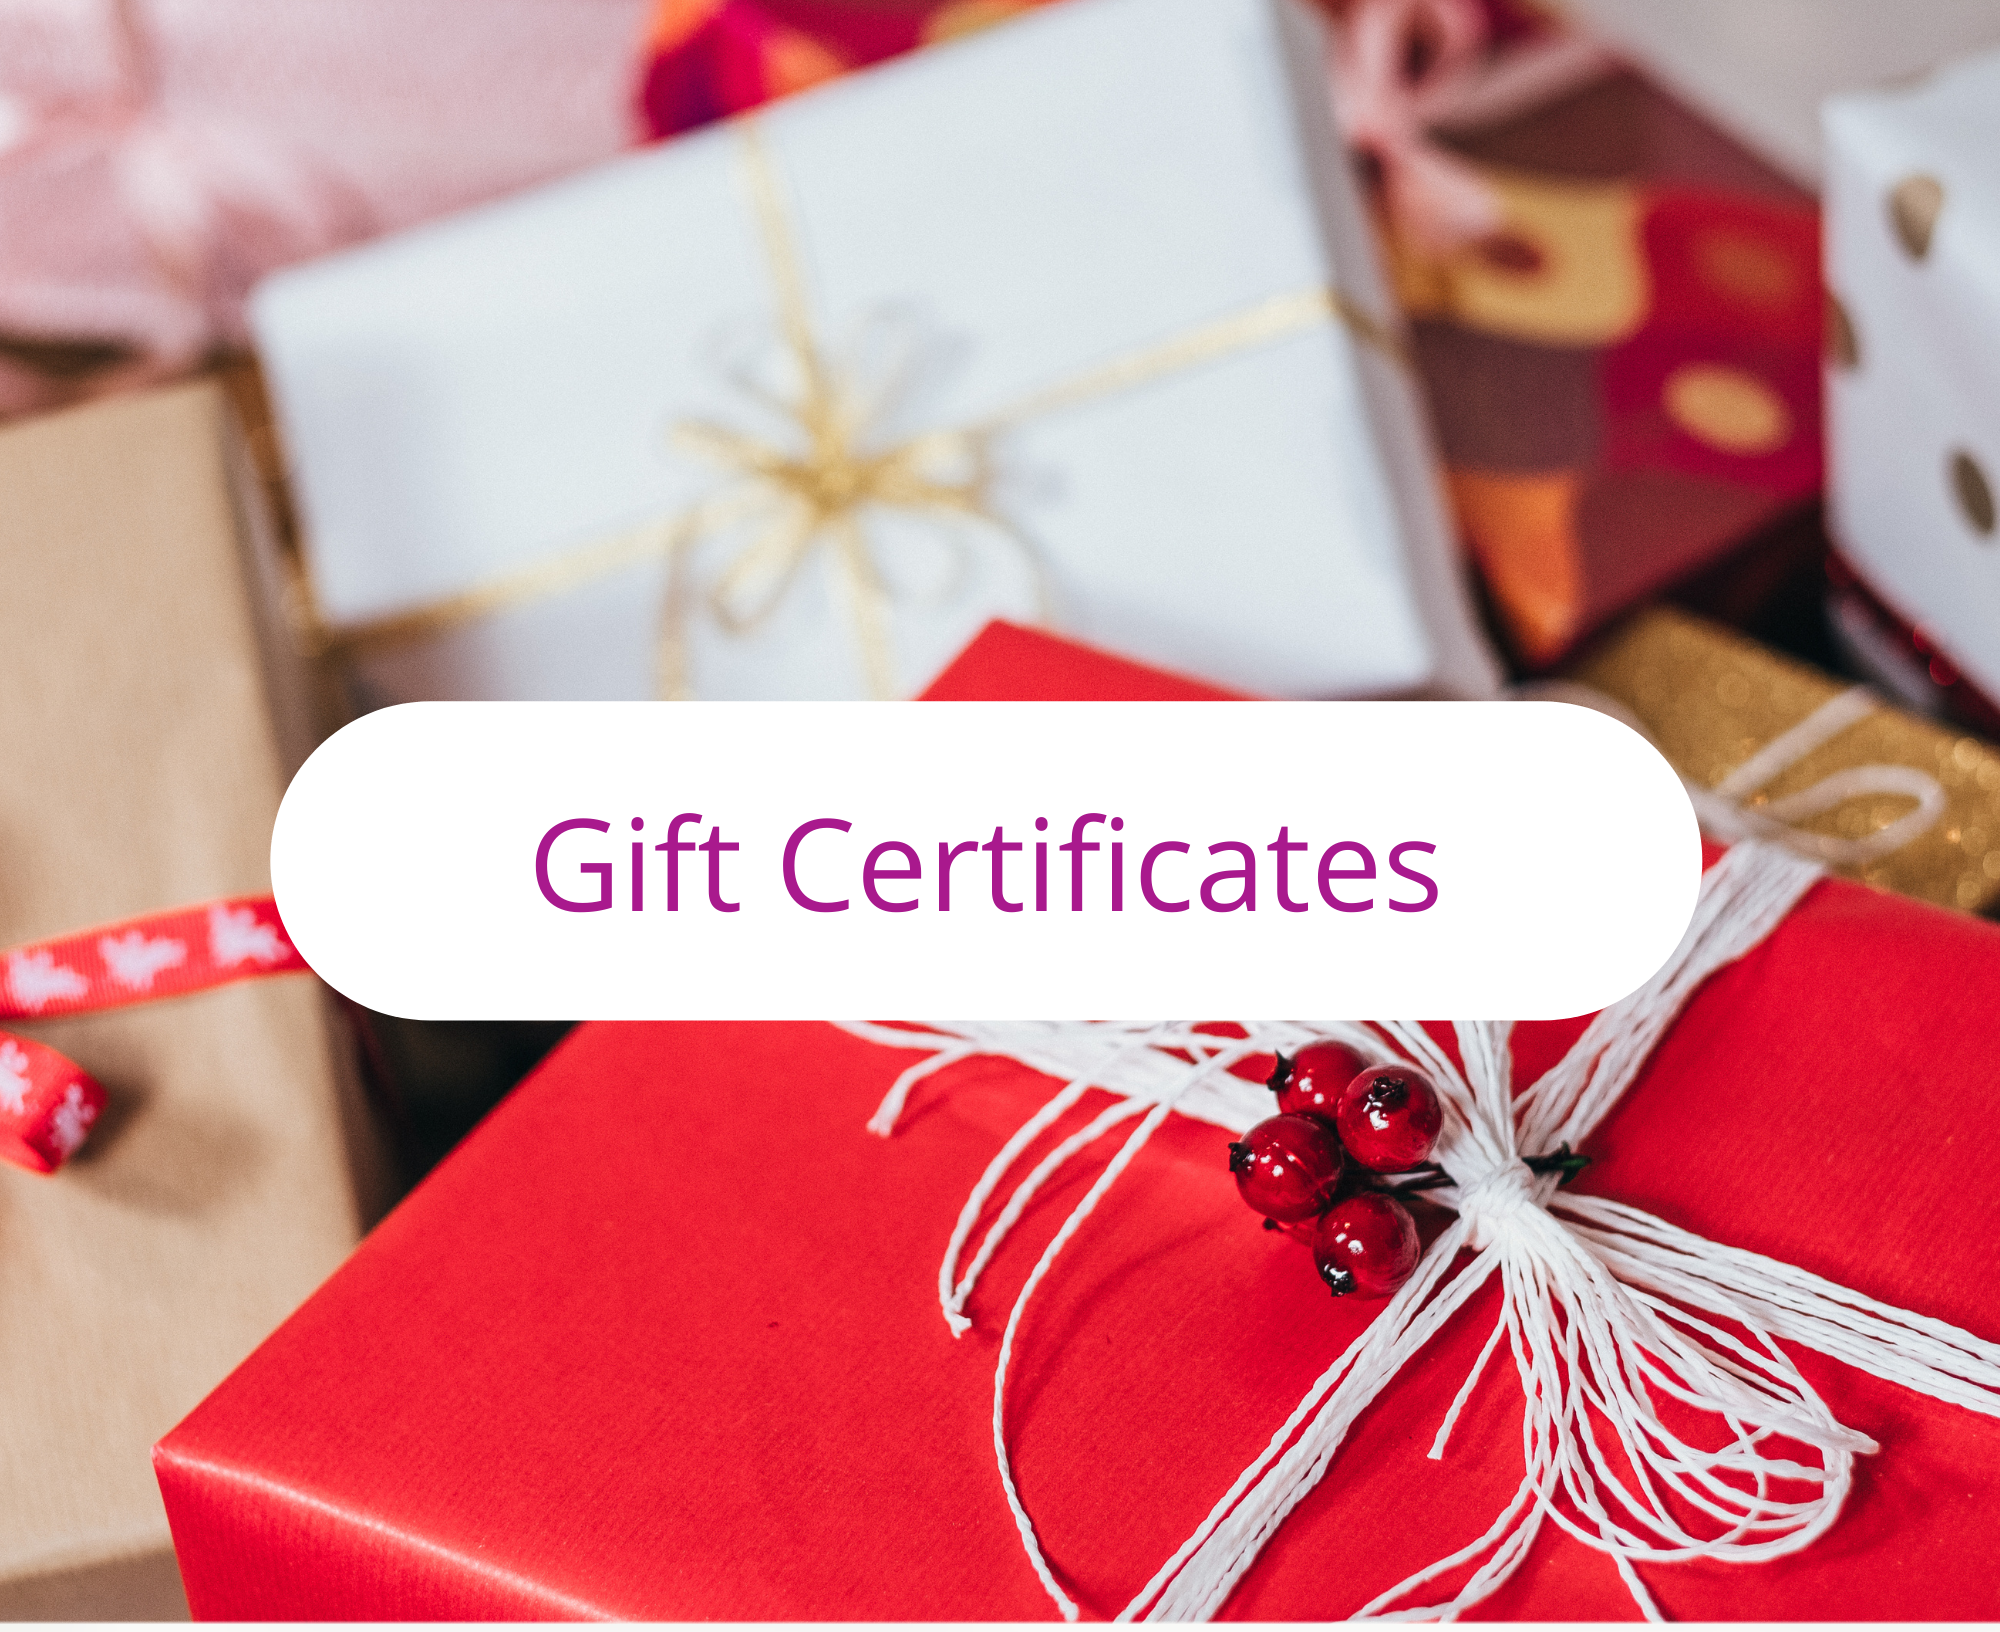 Gift Card, Gift Certificates